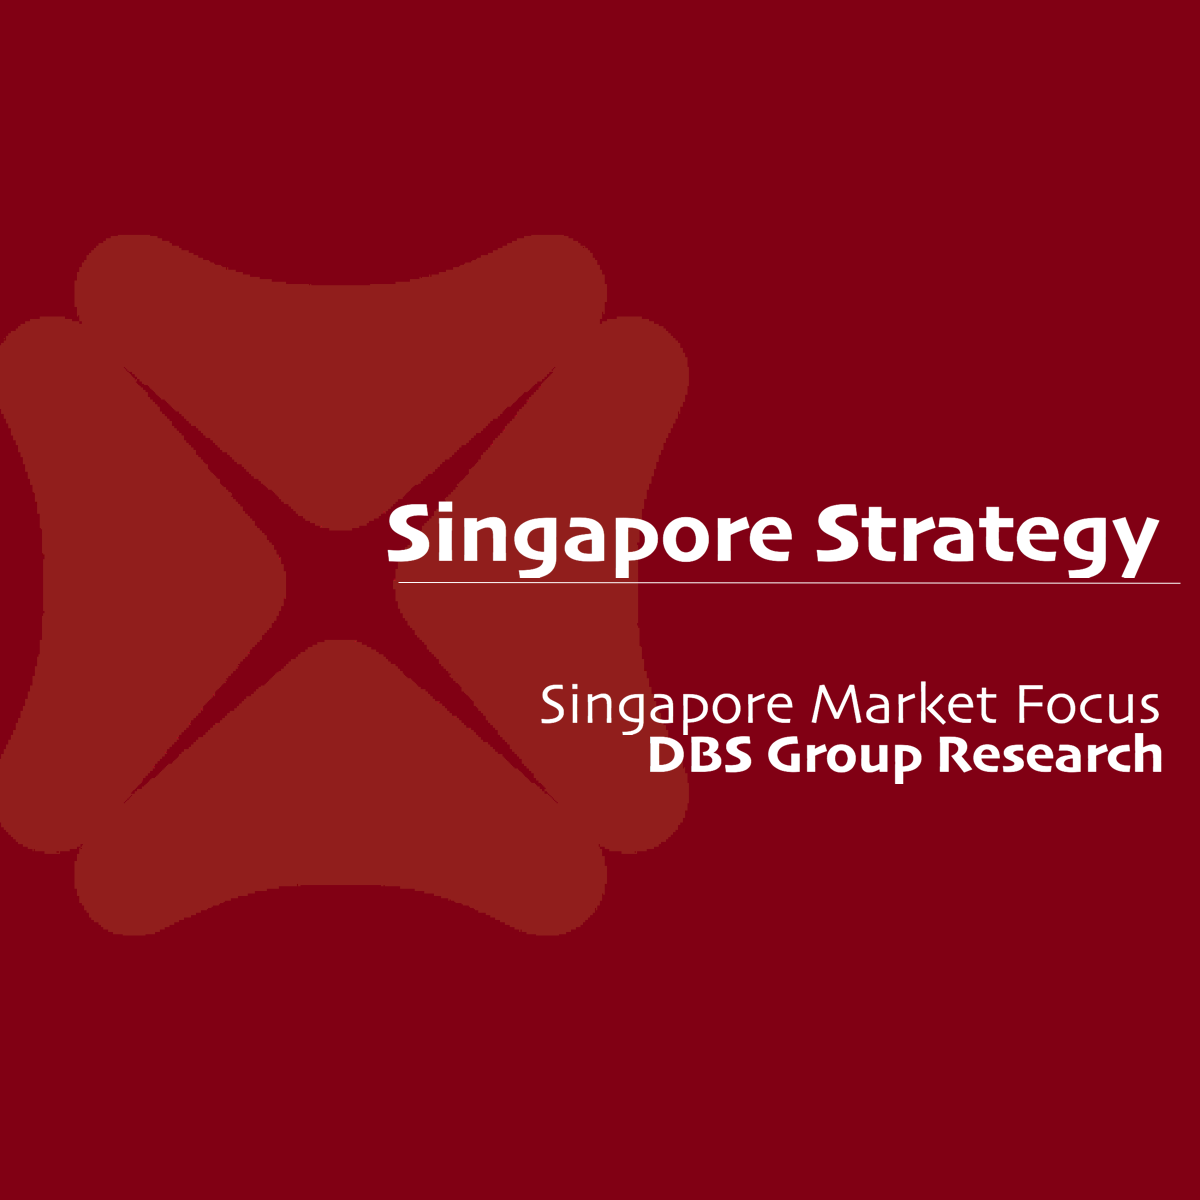 Singapore Strategy - DBS Vickers 2017-08-03: Shadow Of Sept Policy Meetings